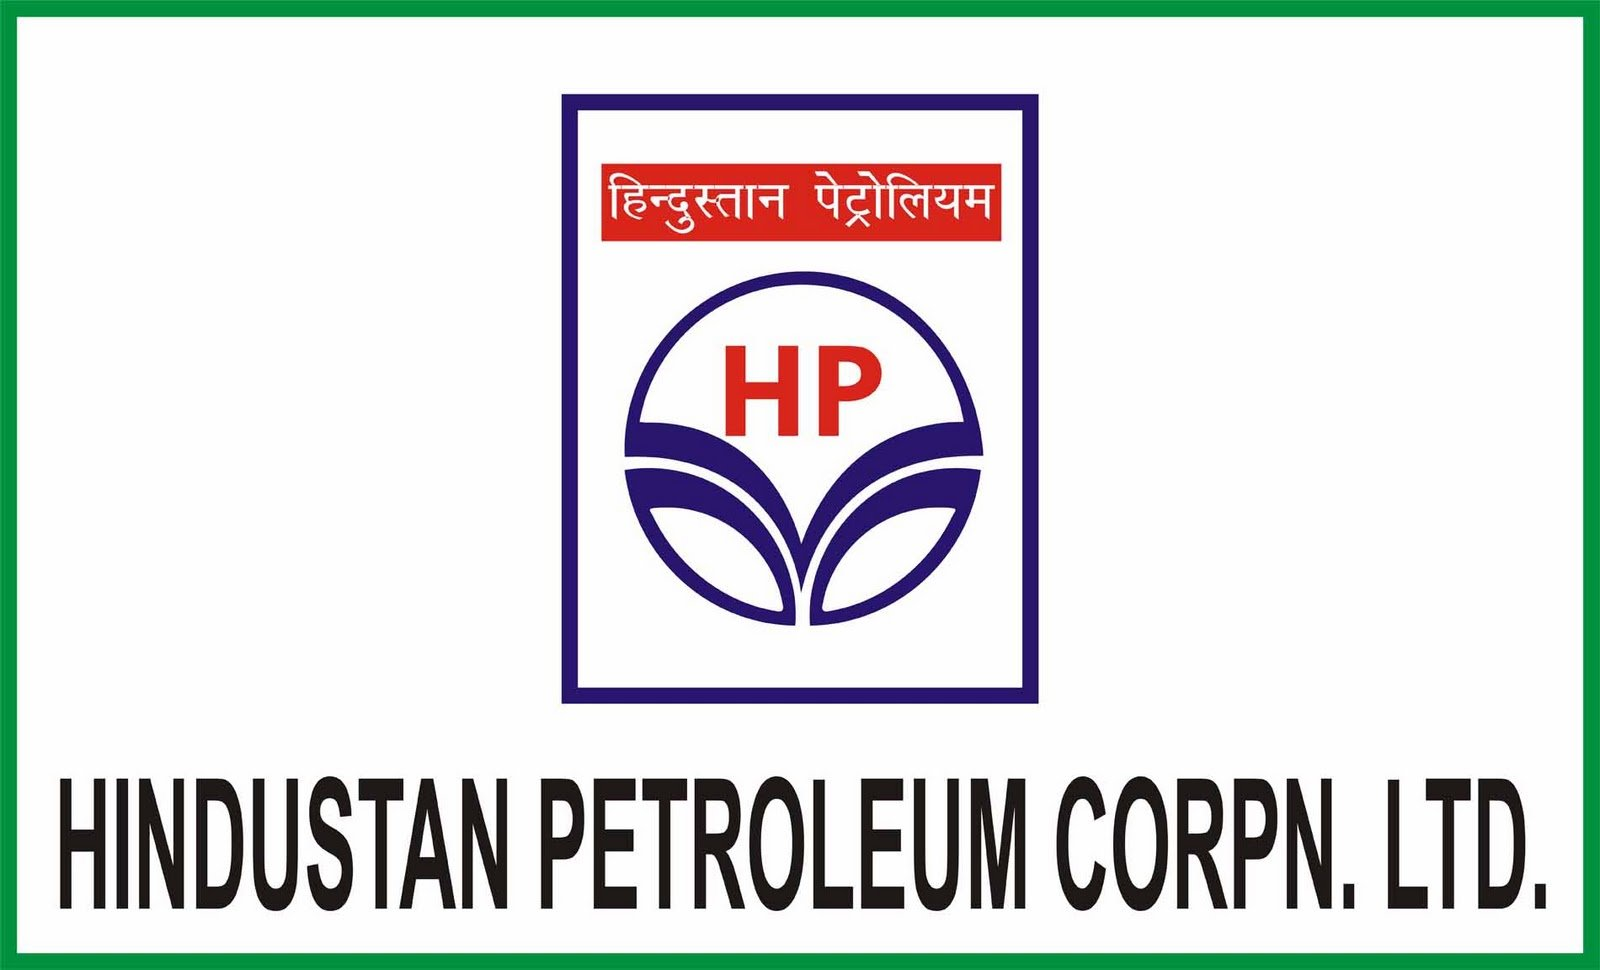 HPCL Vendor Bill Tracking System